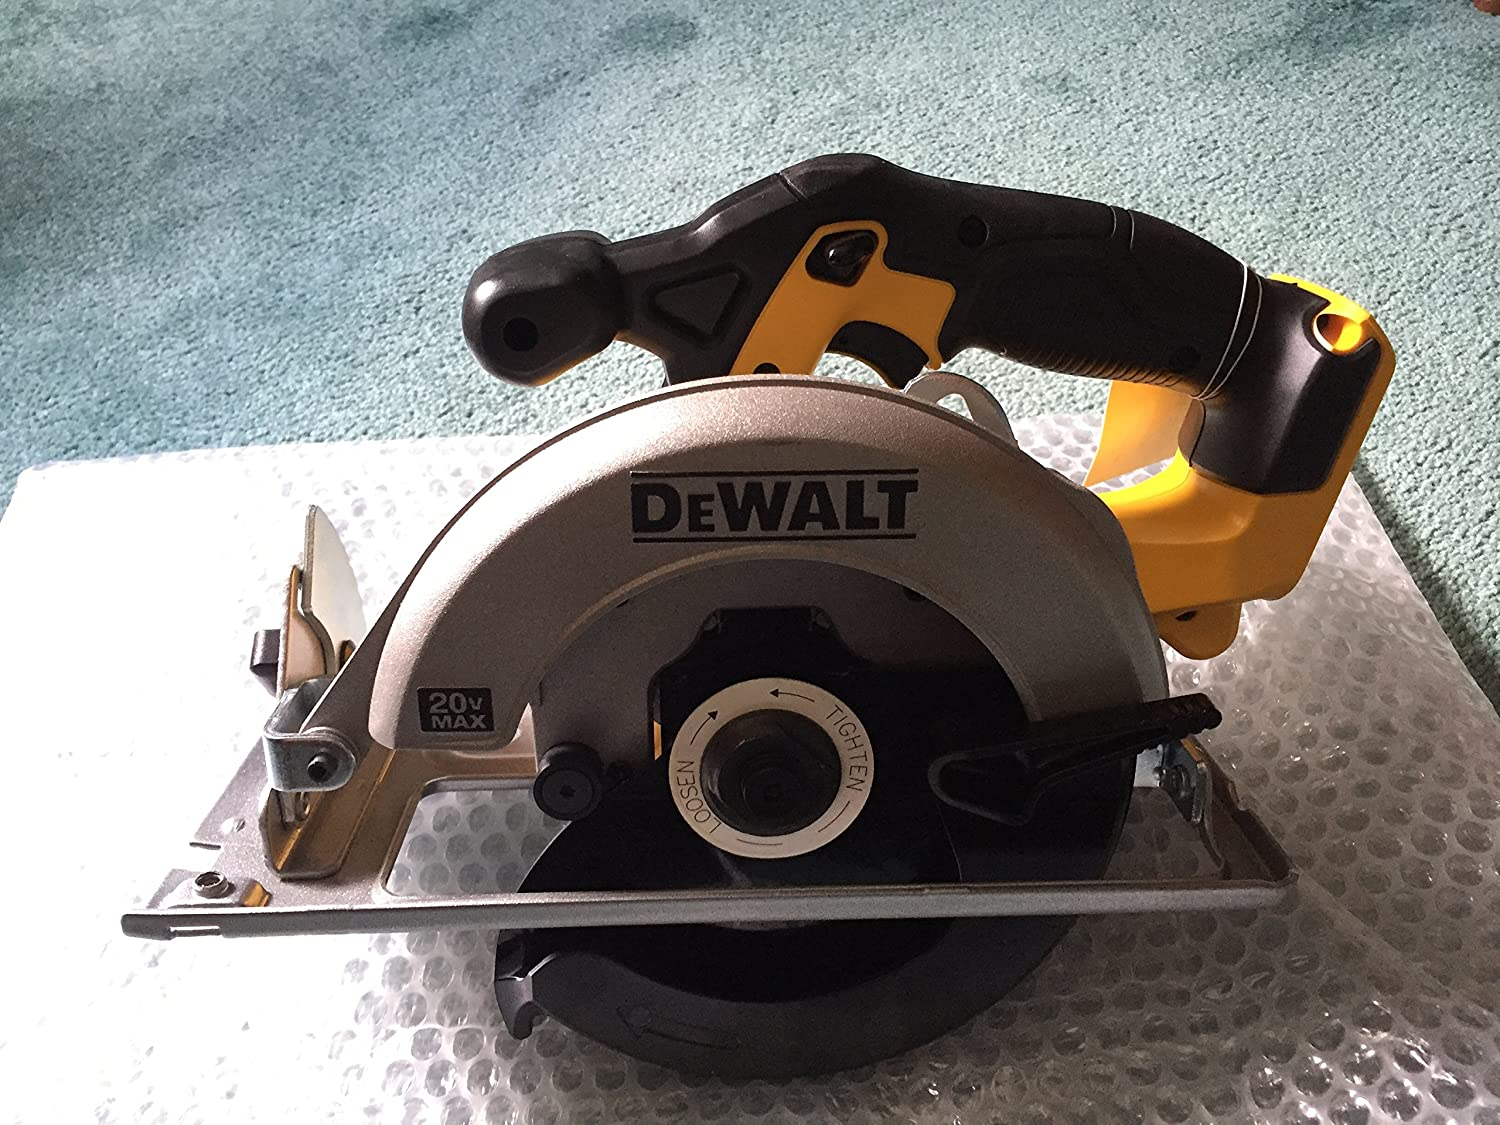 Dewalt DCS393 bare tool 20V MAX 6 1 2 circular saw in bulk packaging